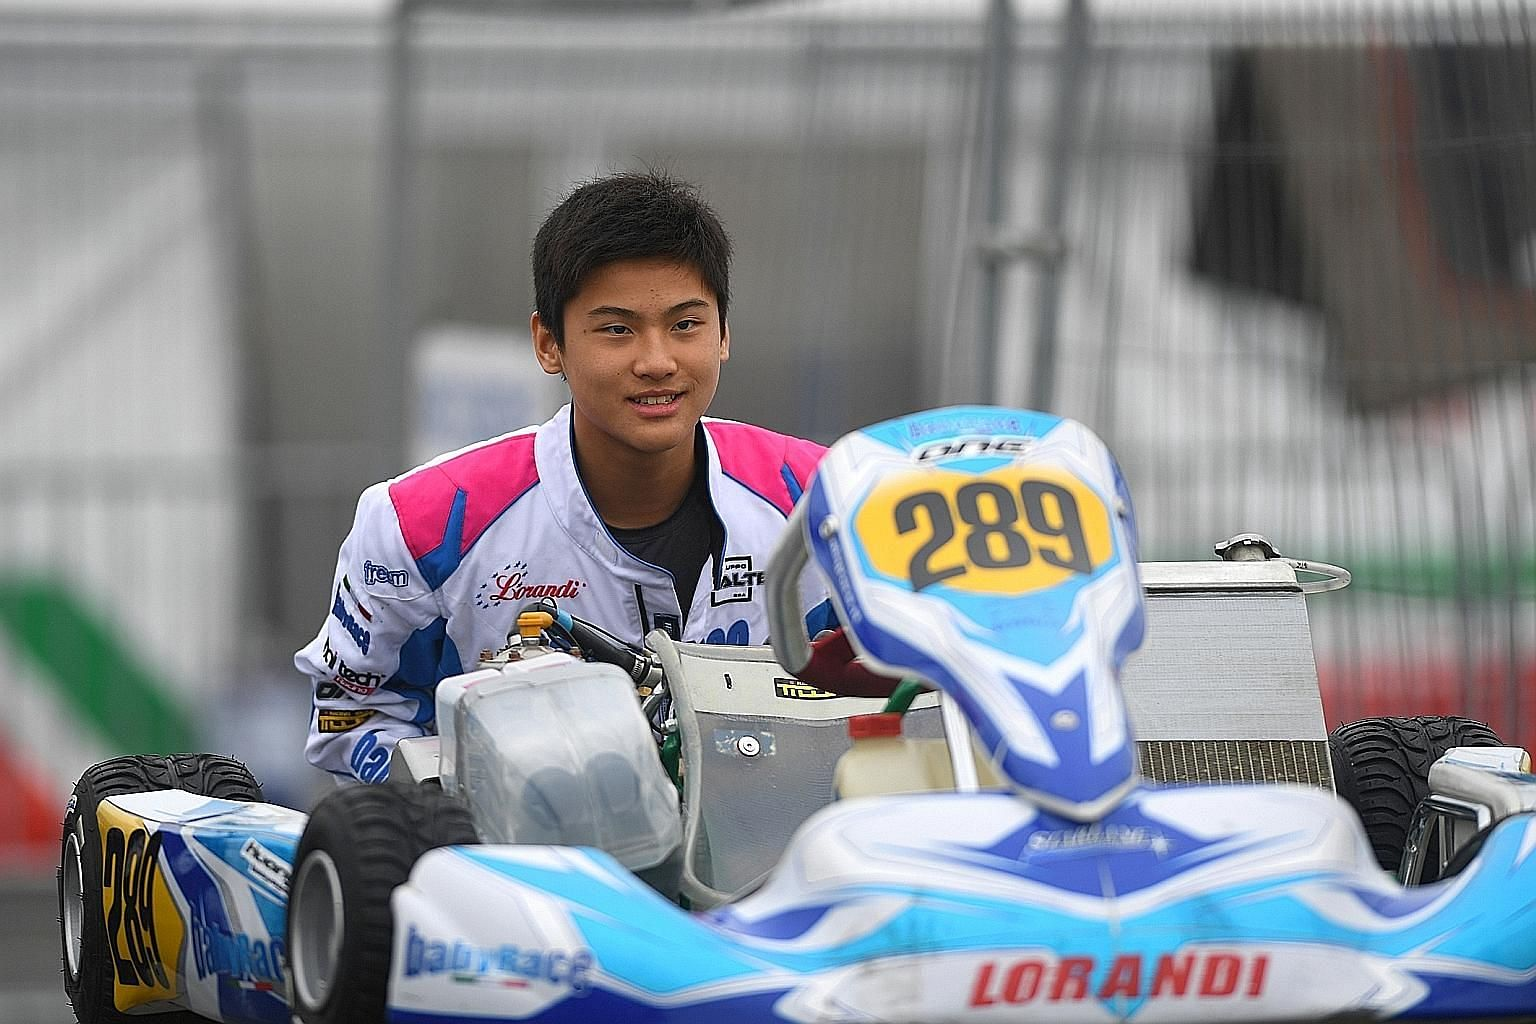 Alex Huang races nearly every weekend, saying that a disciplined lifestyle has helped him perform better in competitions.